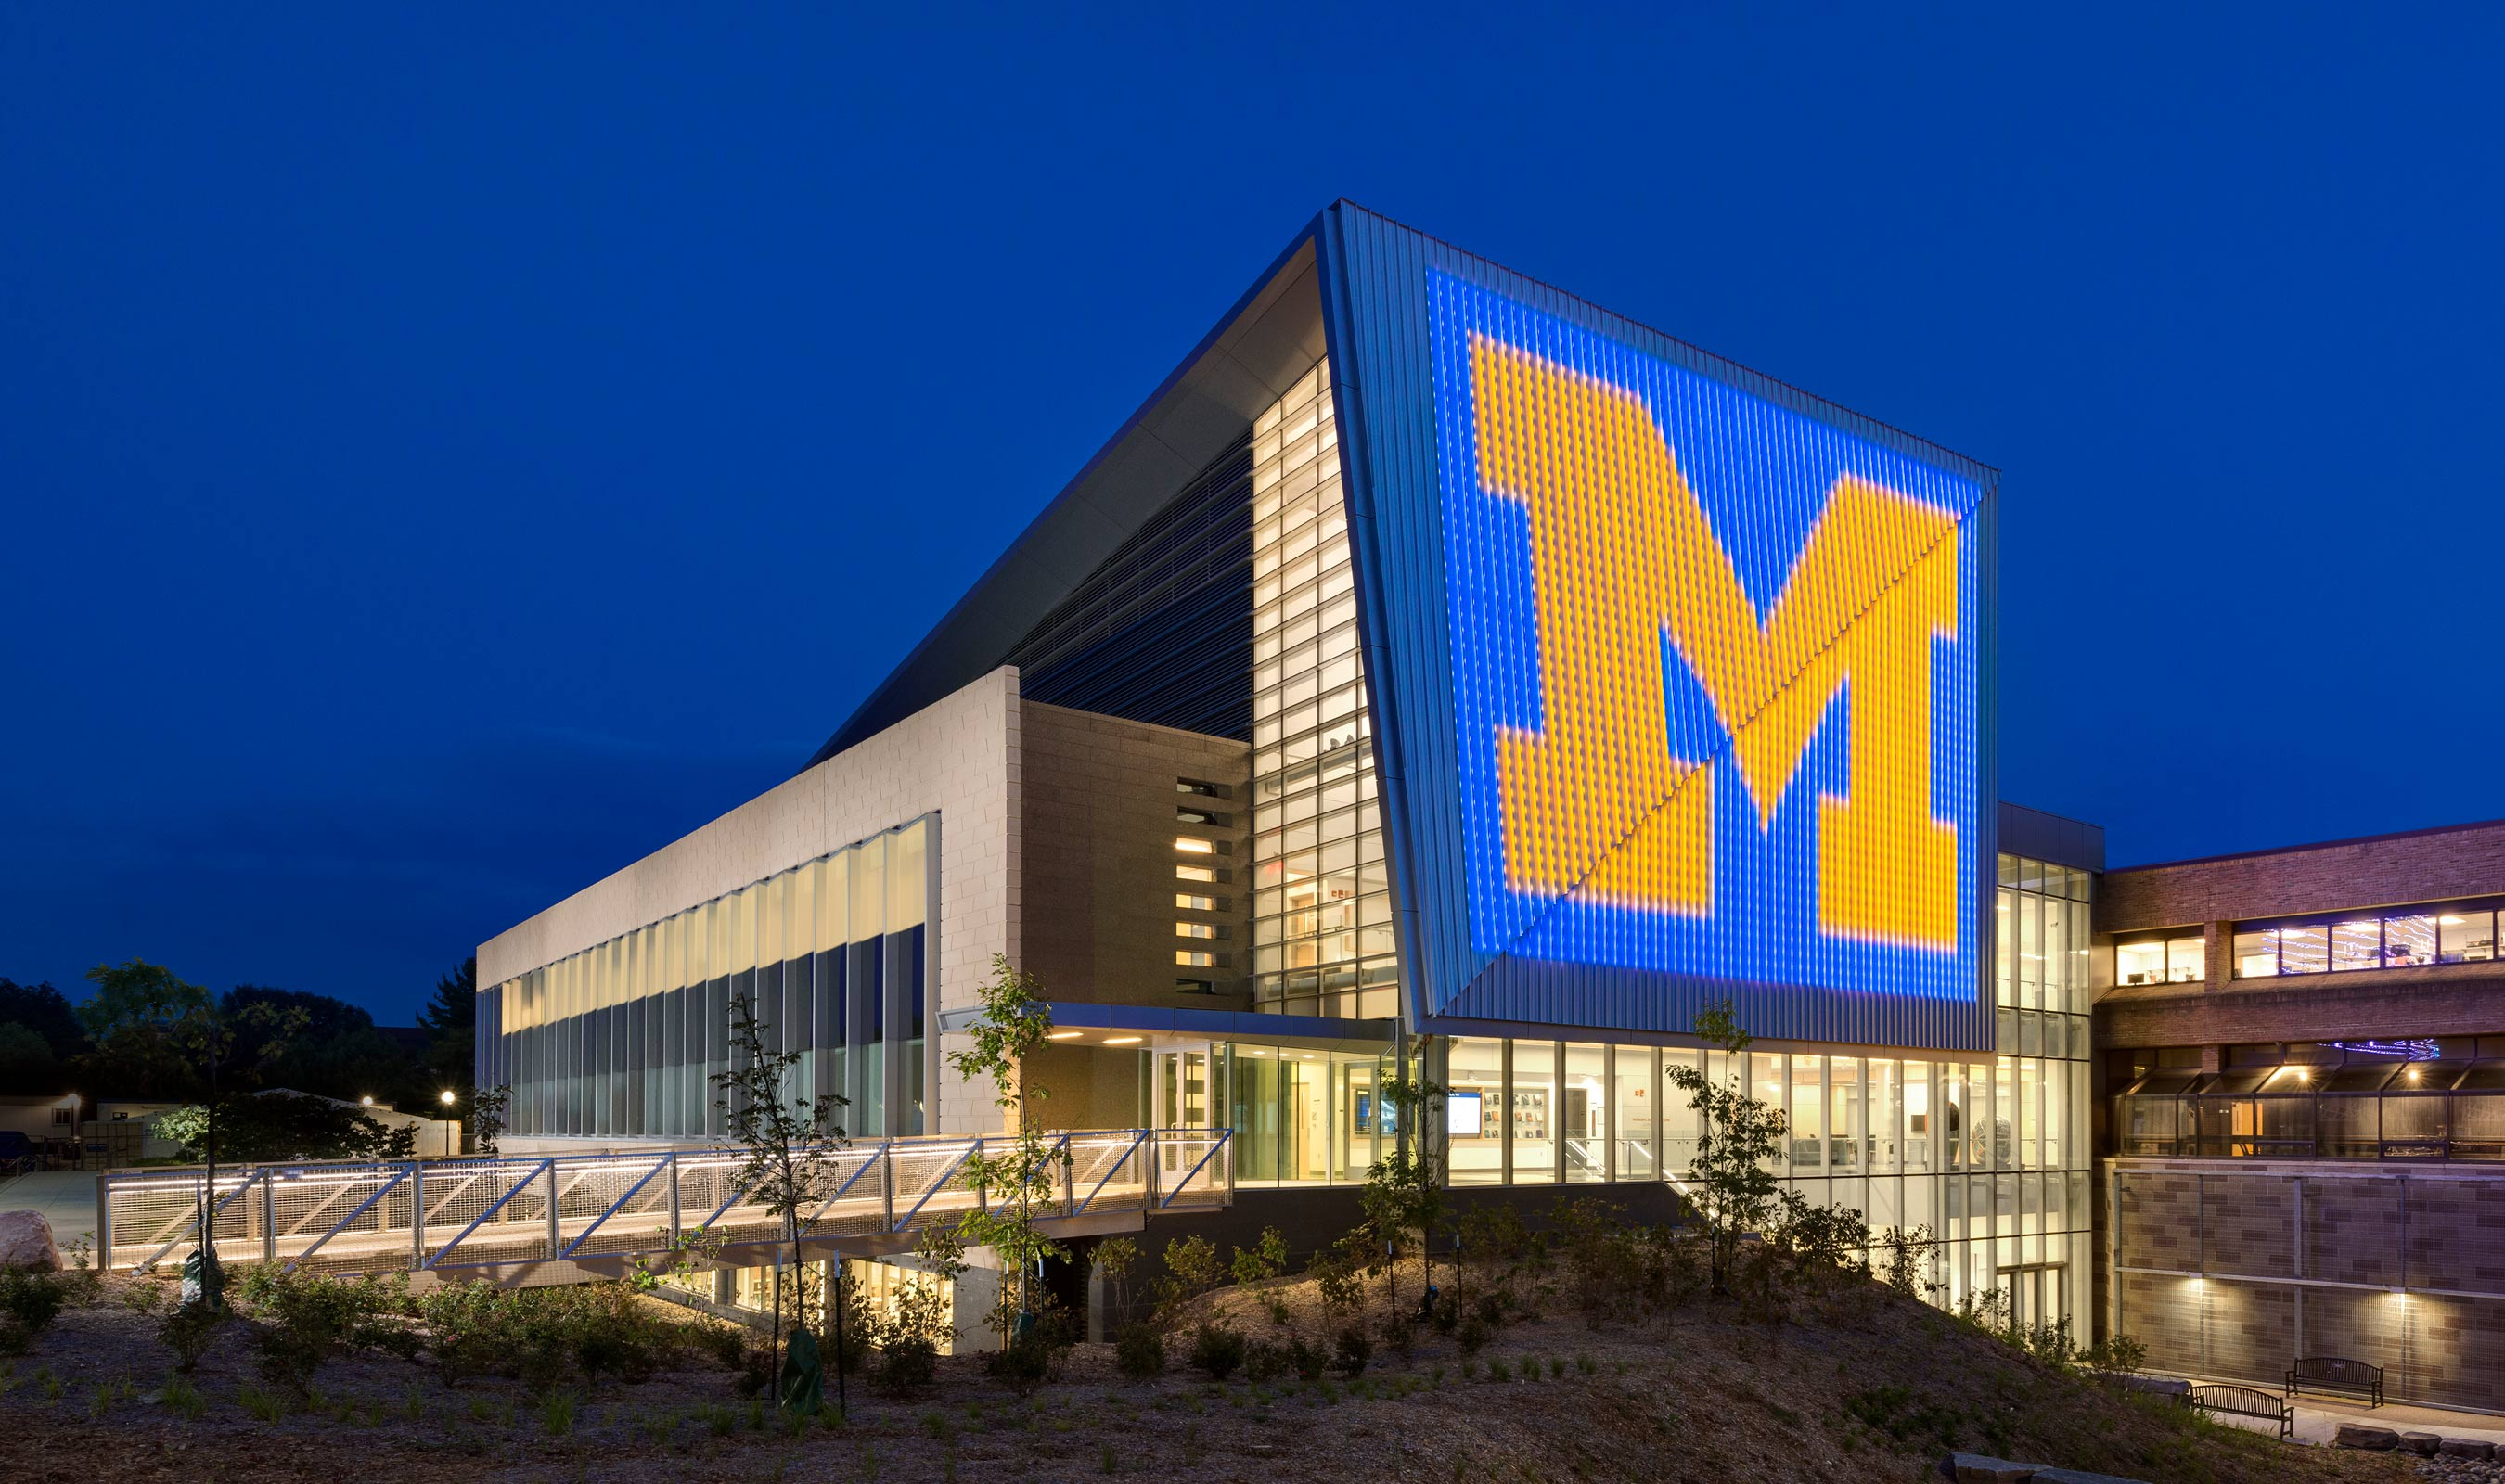 University of Michigan uses Banker Wire's LZ-55 as wire mesh railing in fill on bridge.